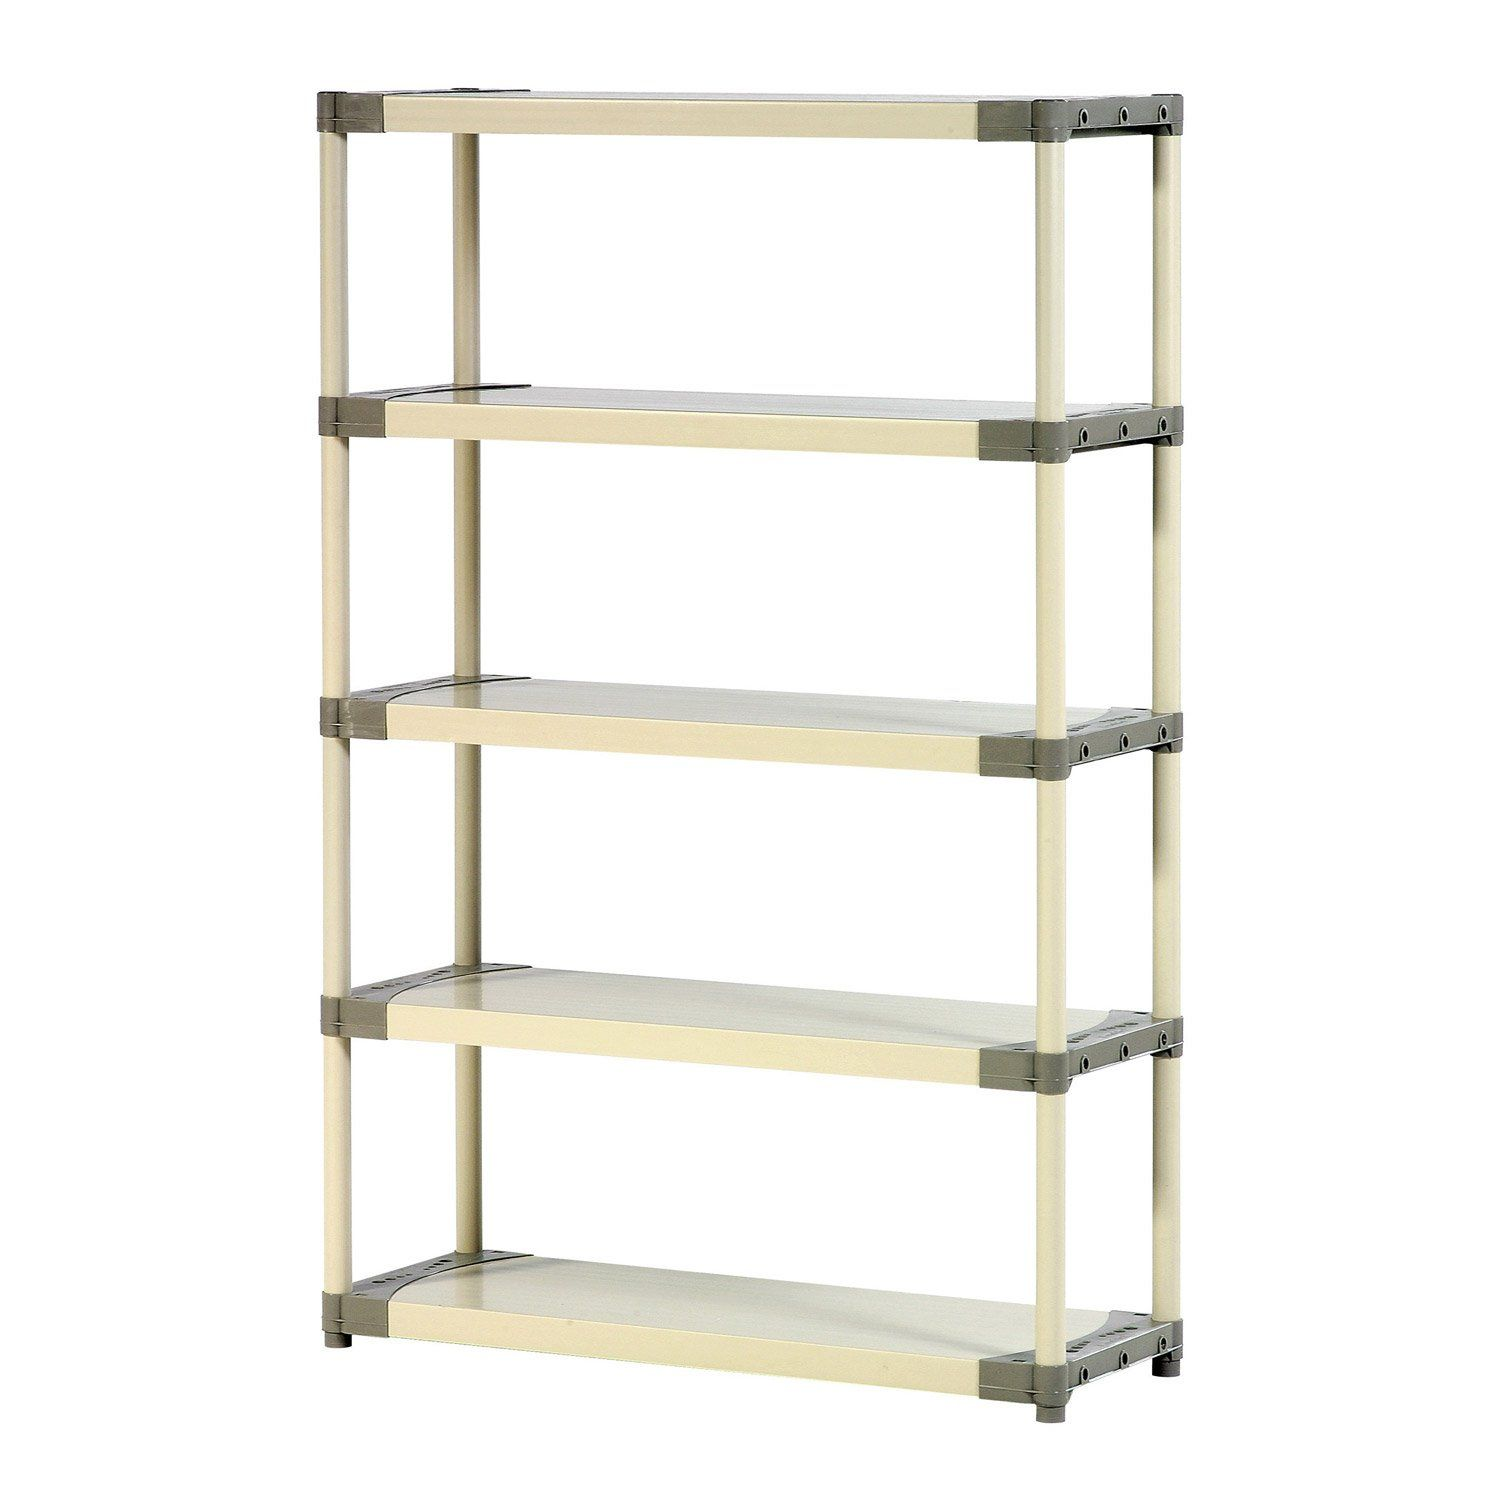 8 Simple Brico Depot Etagere Minimalis